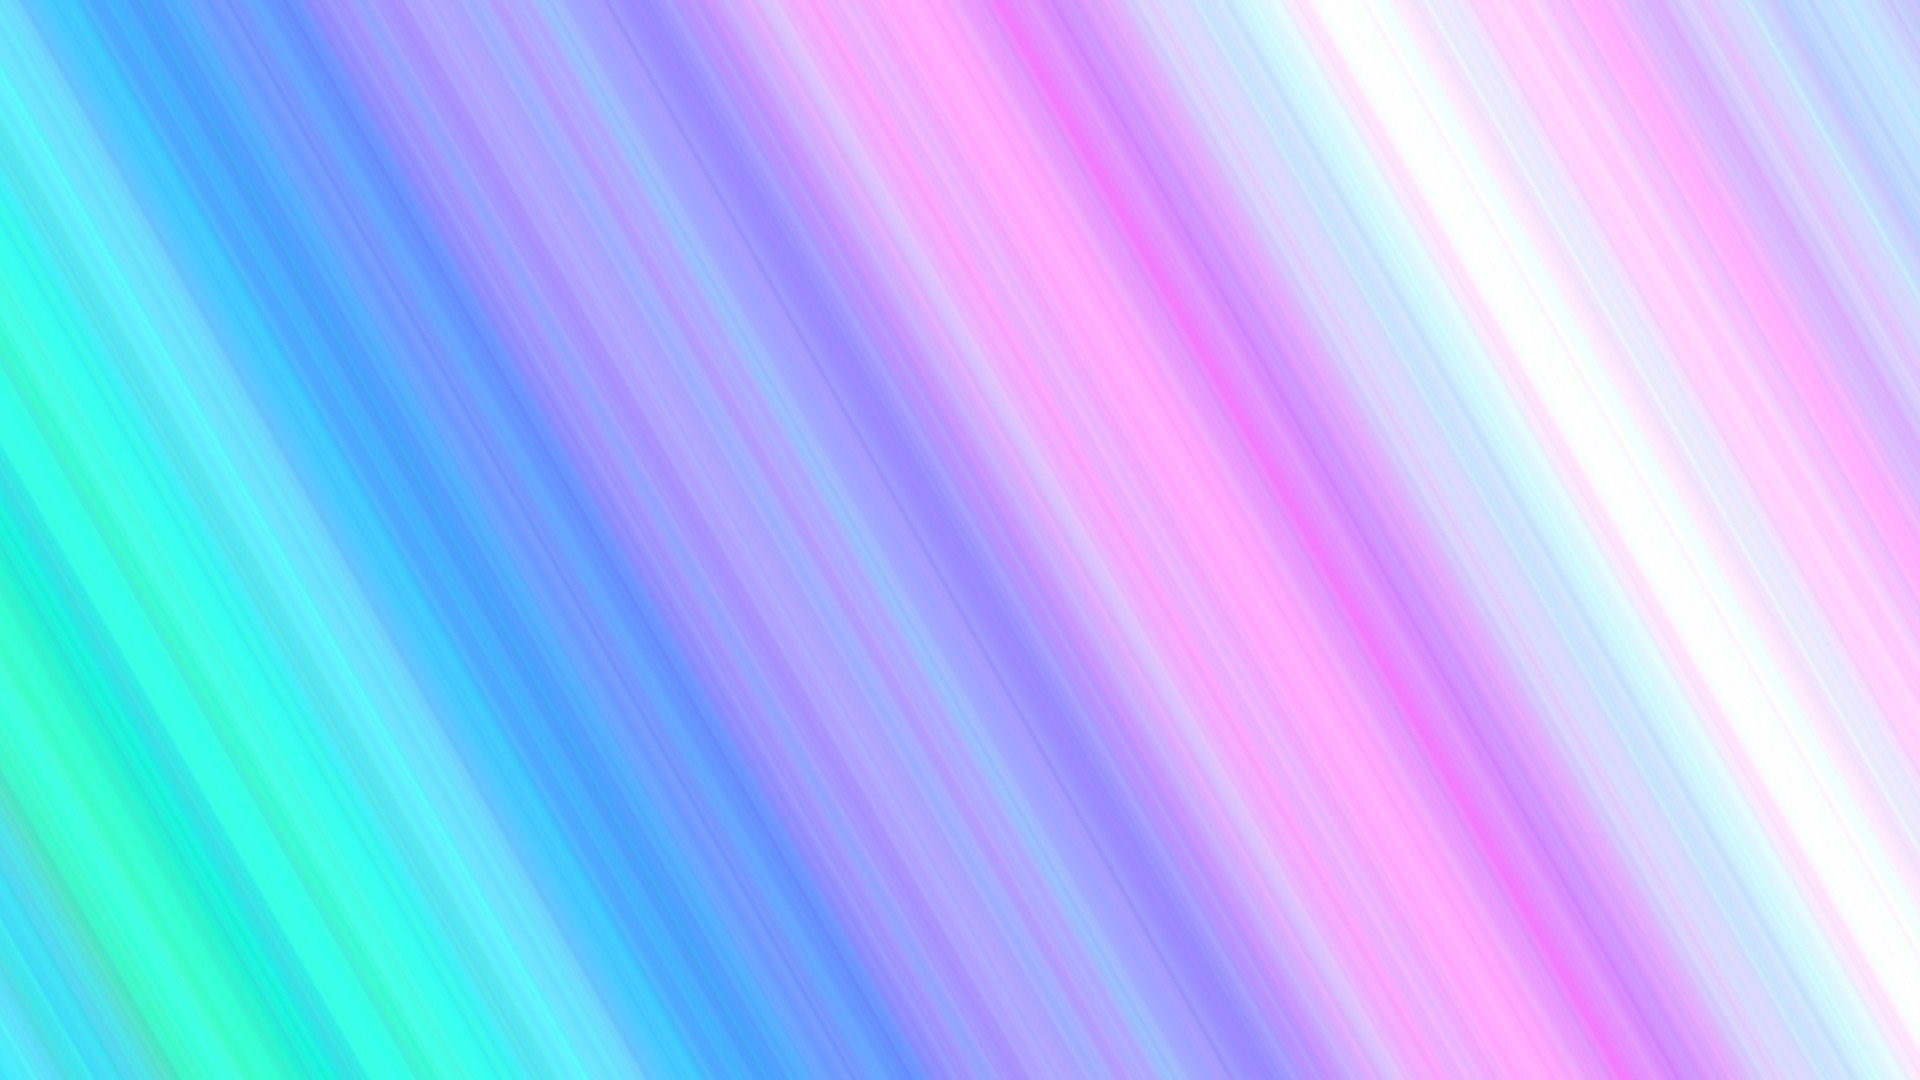 Pink And Blue hd wallpaper download